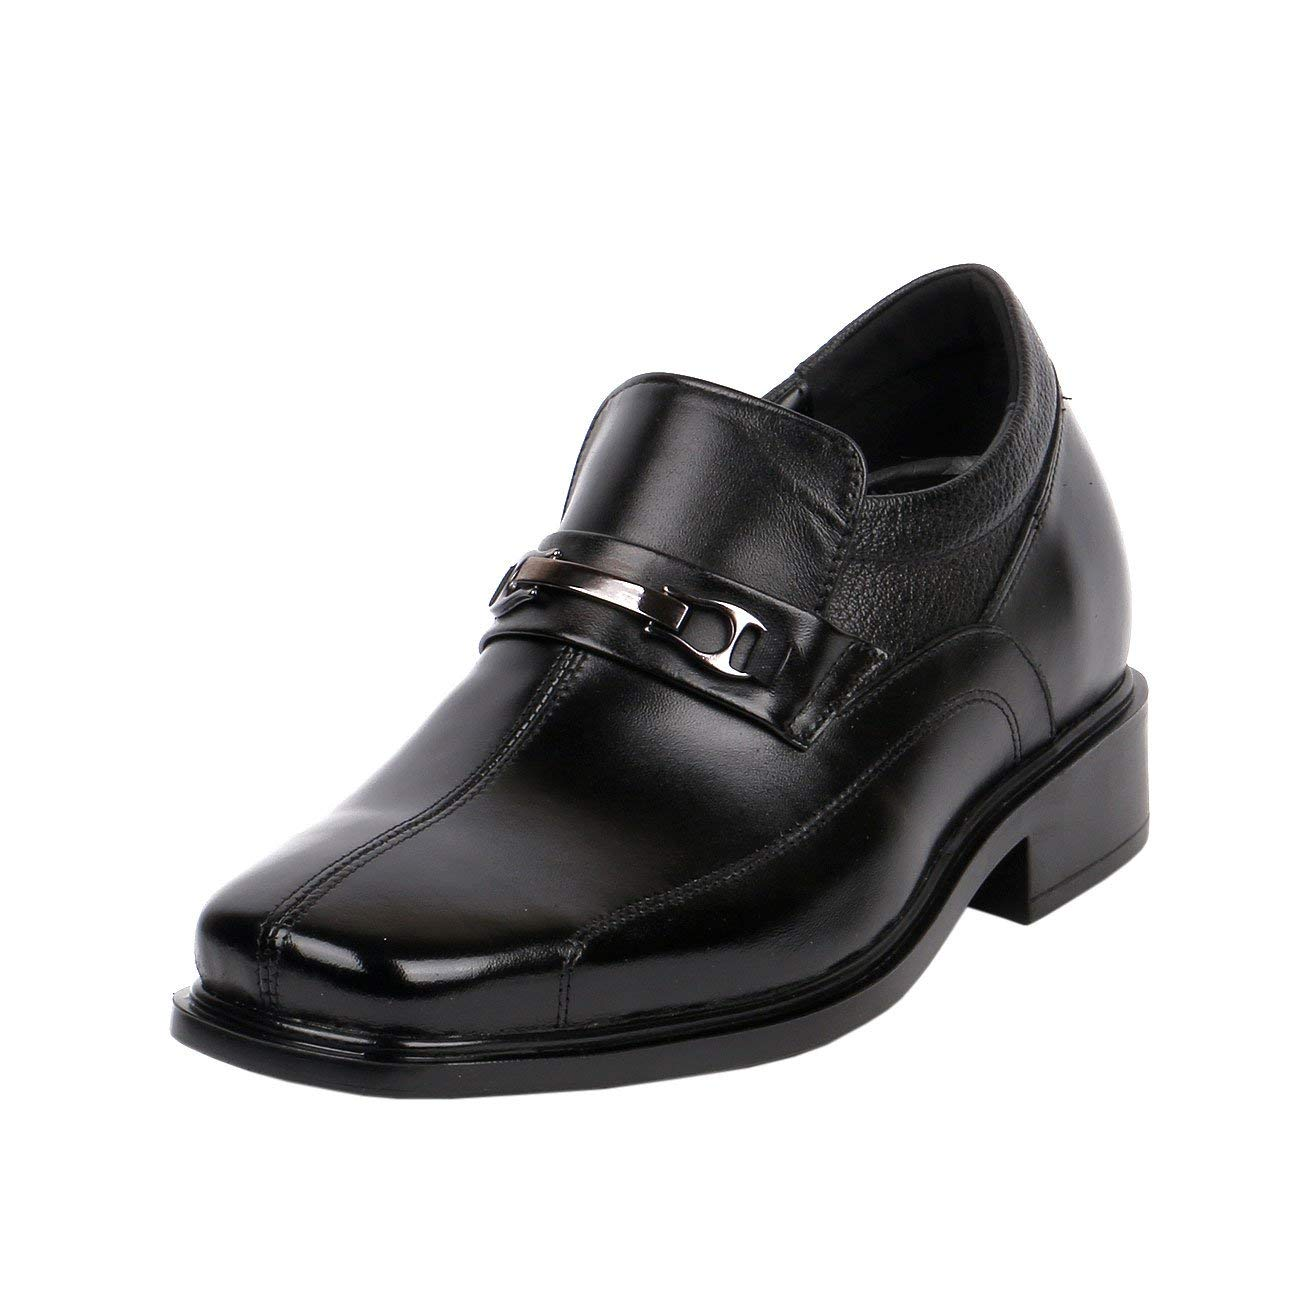 acf83695121 Get Quotations · JOTA Shoes Men Shoes Increase Height Ultra Light Comfy Wide  Feet Loafer Square